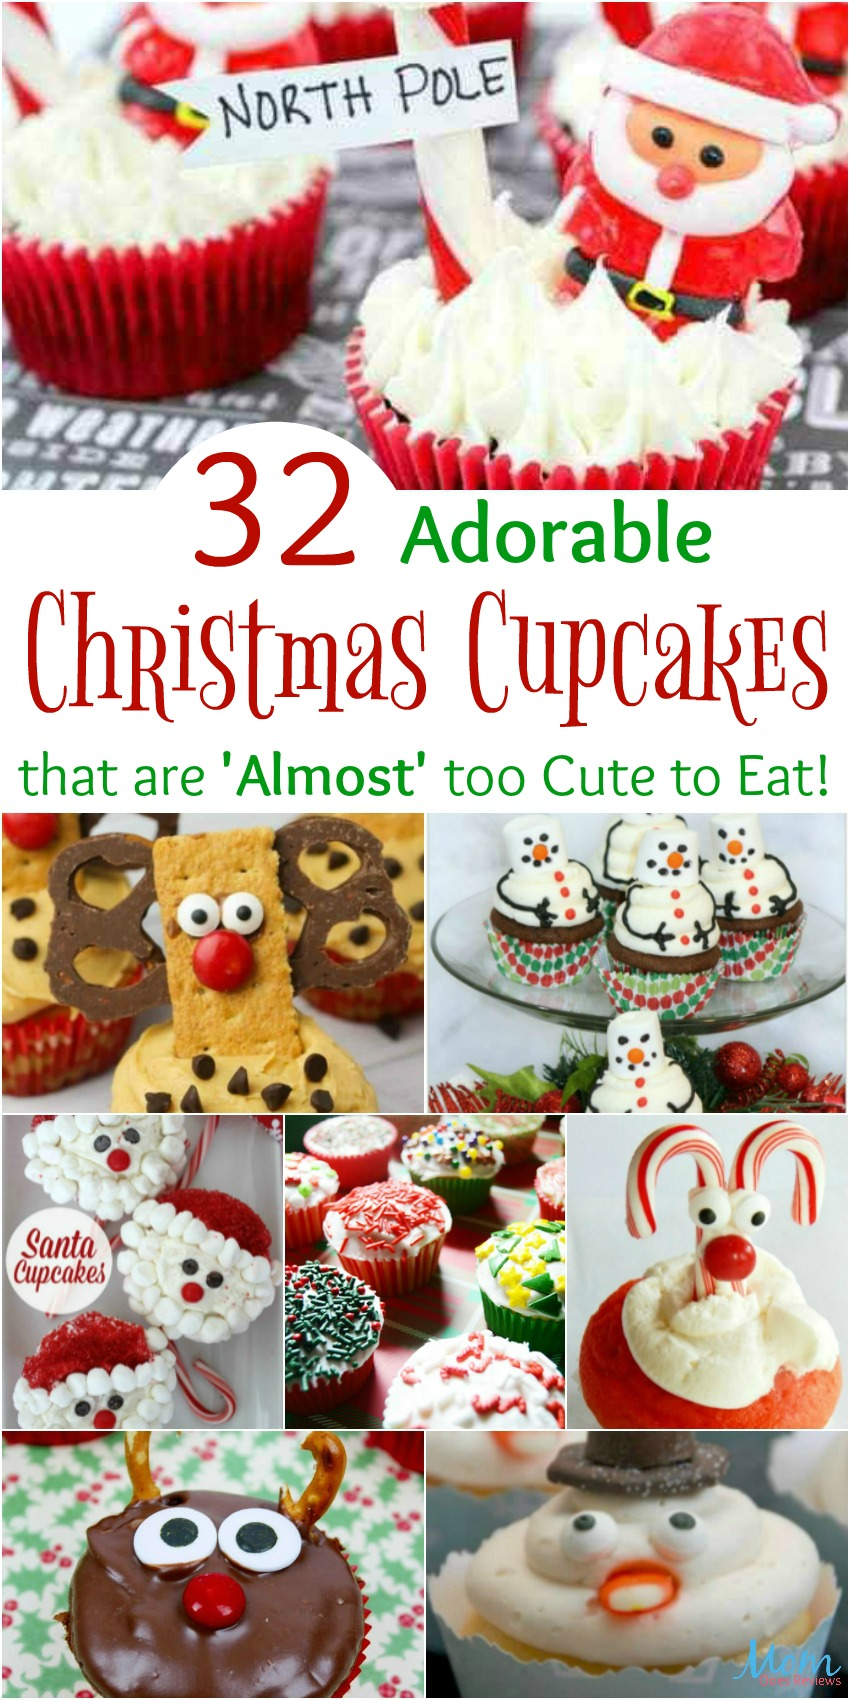 32 Adorable Christmas Cupcakes that are 'Almost' too Cute to Eat